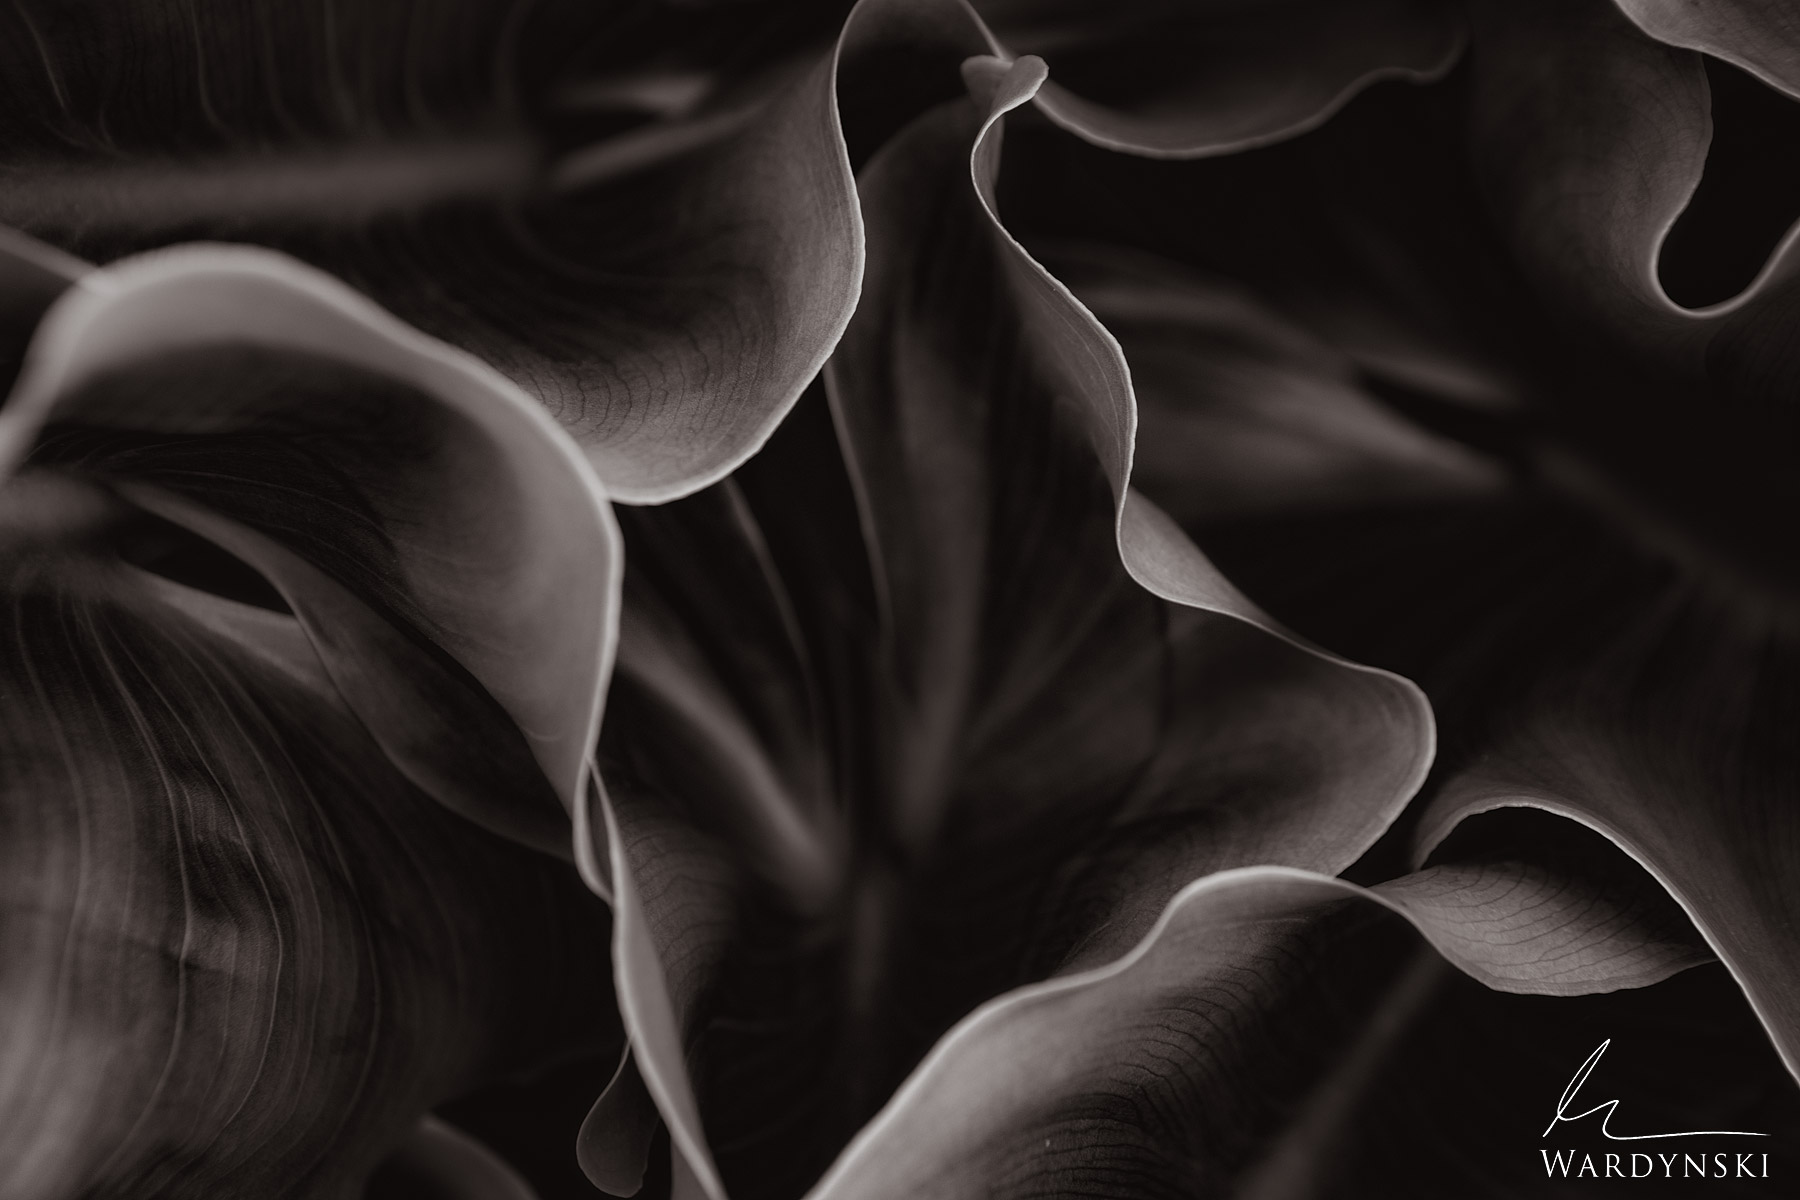 Sepia Fine Art Print | Limited Edition of 100 (Available in Color) Cala Lilly leaves fold in a pleasant and hypnotic fashion...